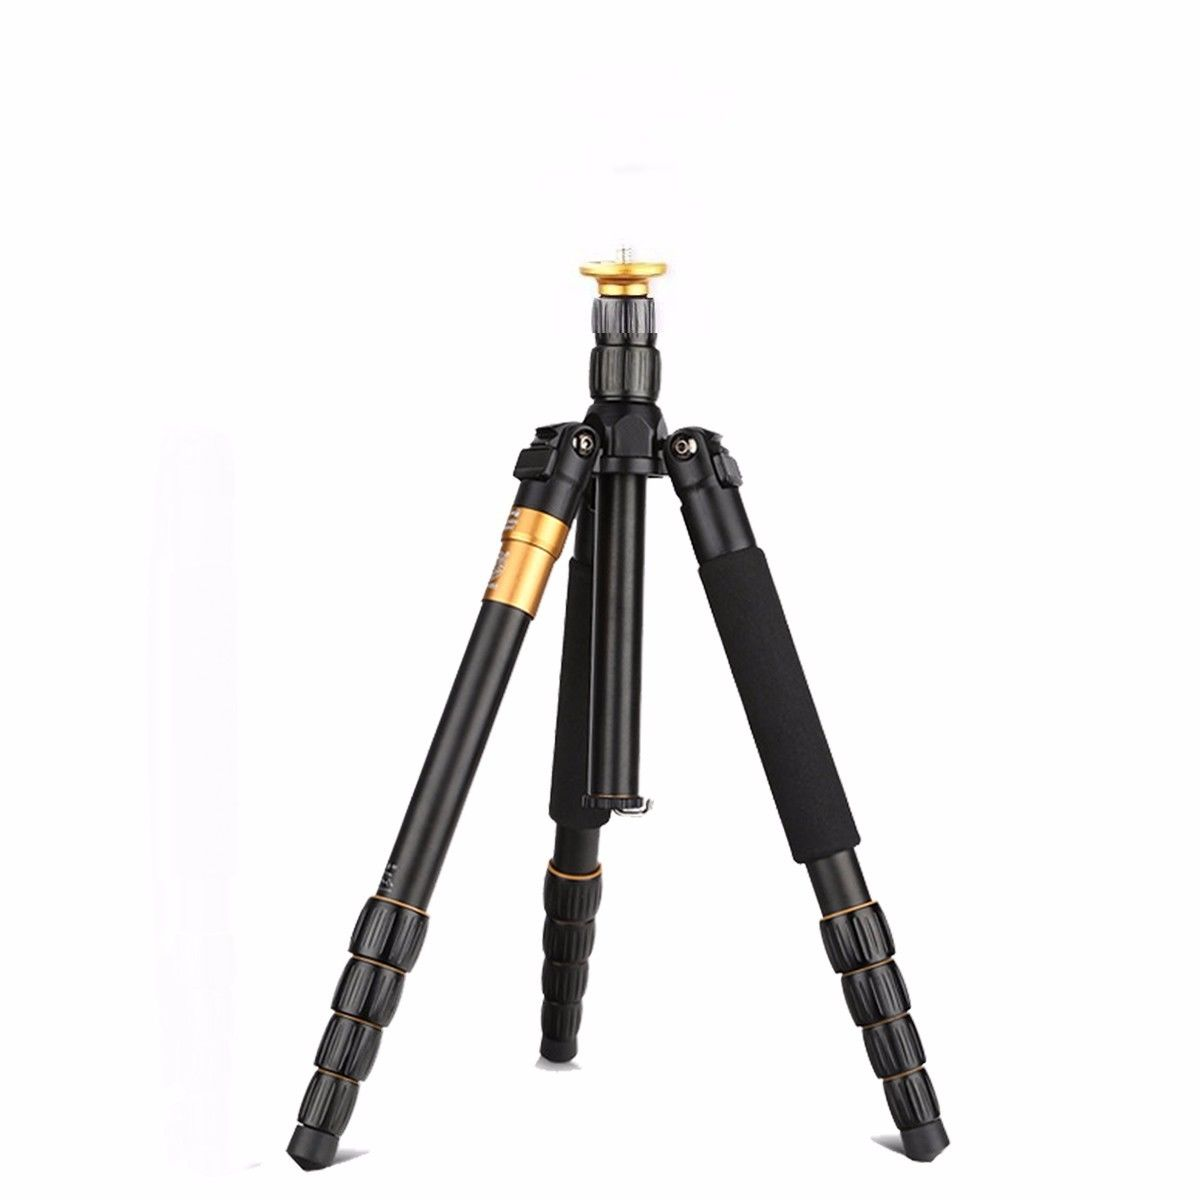 Q666 Lightweight Tripod For DSLR Camera Without Ball Head Monopod Tripod Compact Travel Camera Stand For Canon Nikon Sony SLR zomei z888 portable stable magnesium alloy digital camera tripod monopod ball head for digital slr dslr camera